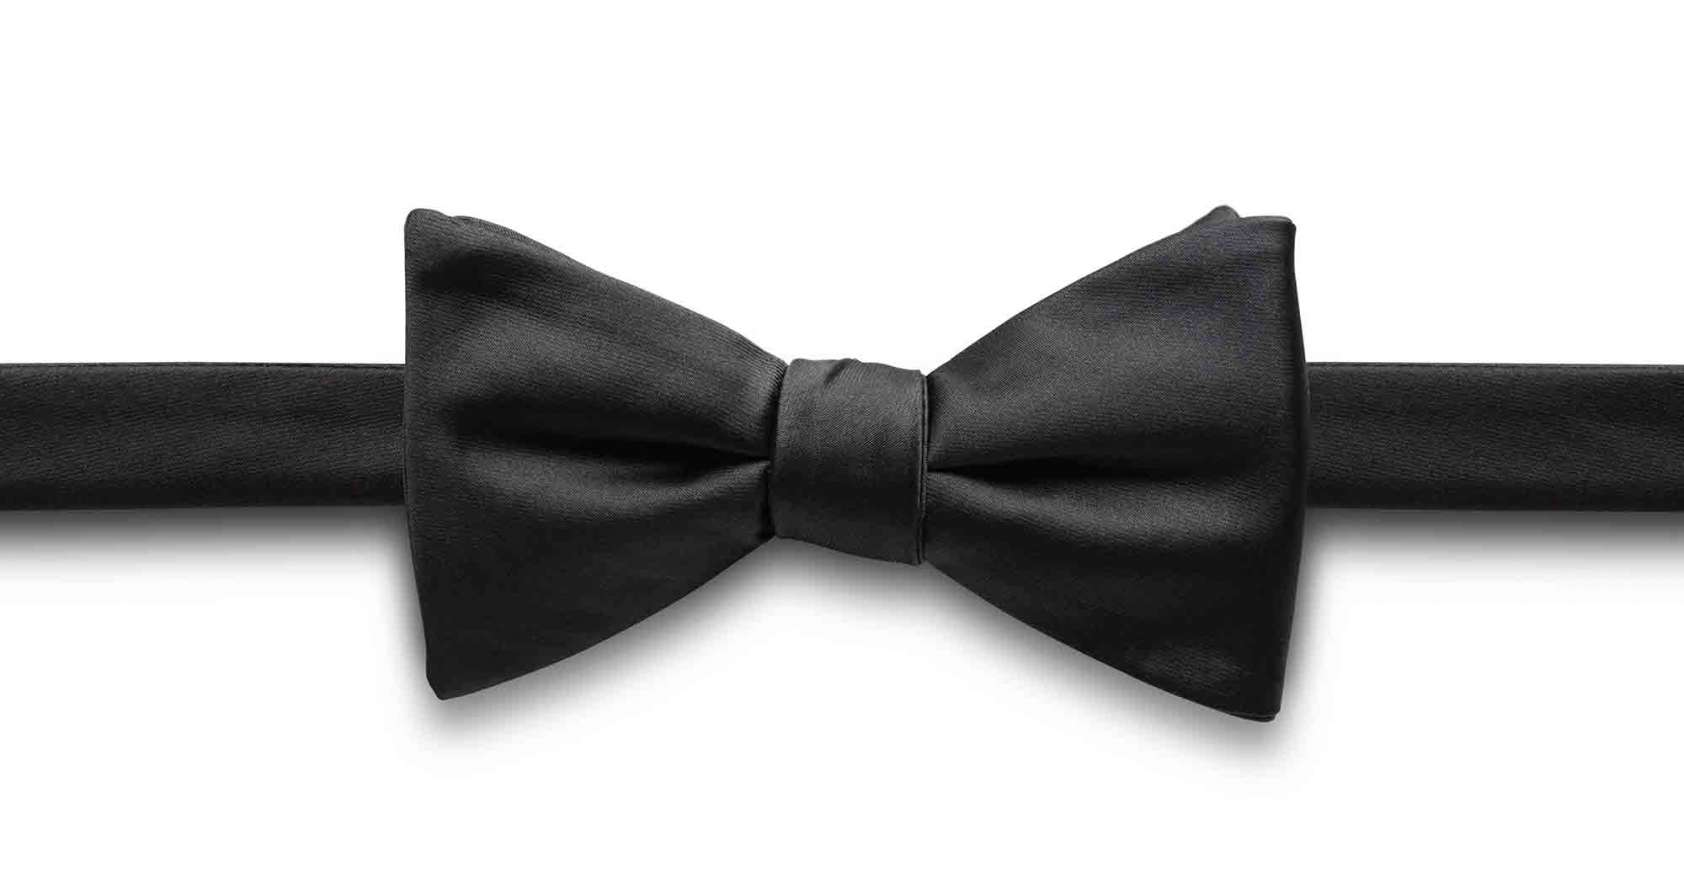 black bow tie on a white background to describe black tie service levels